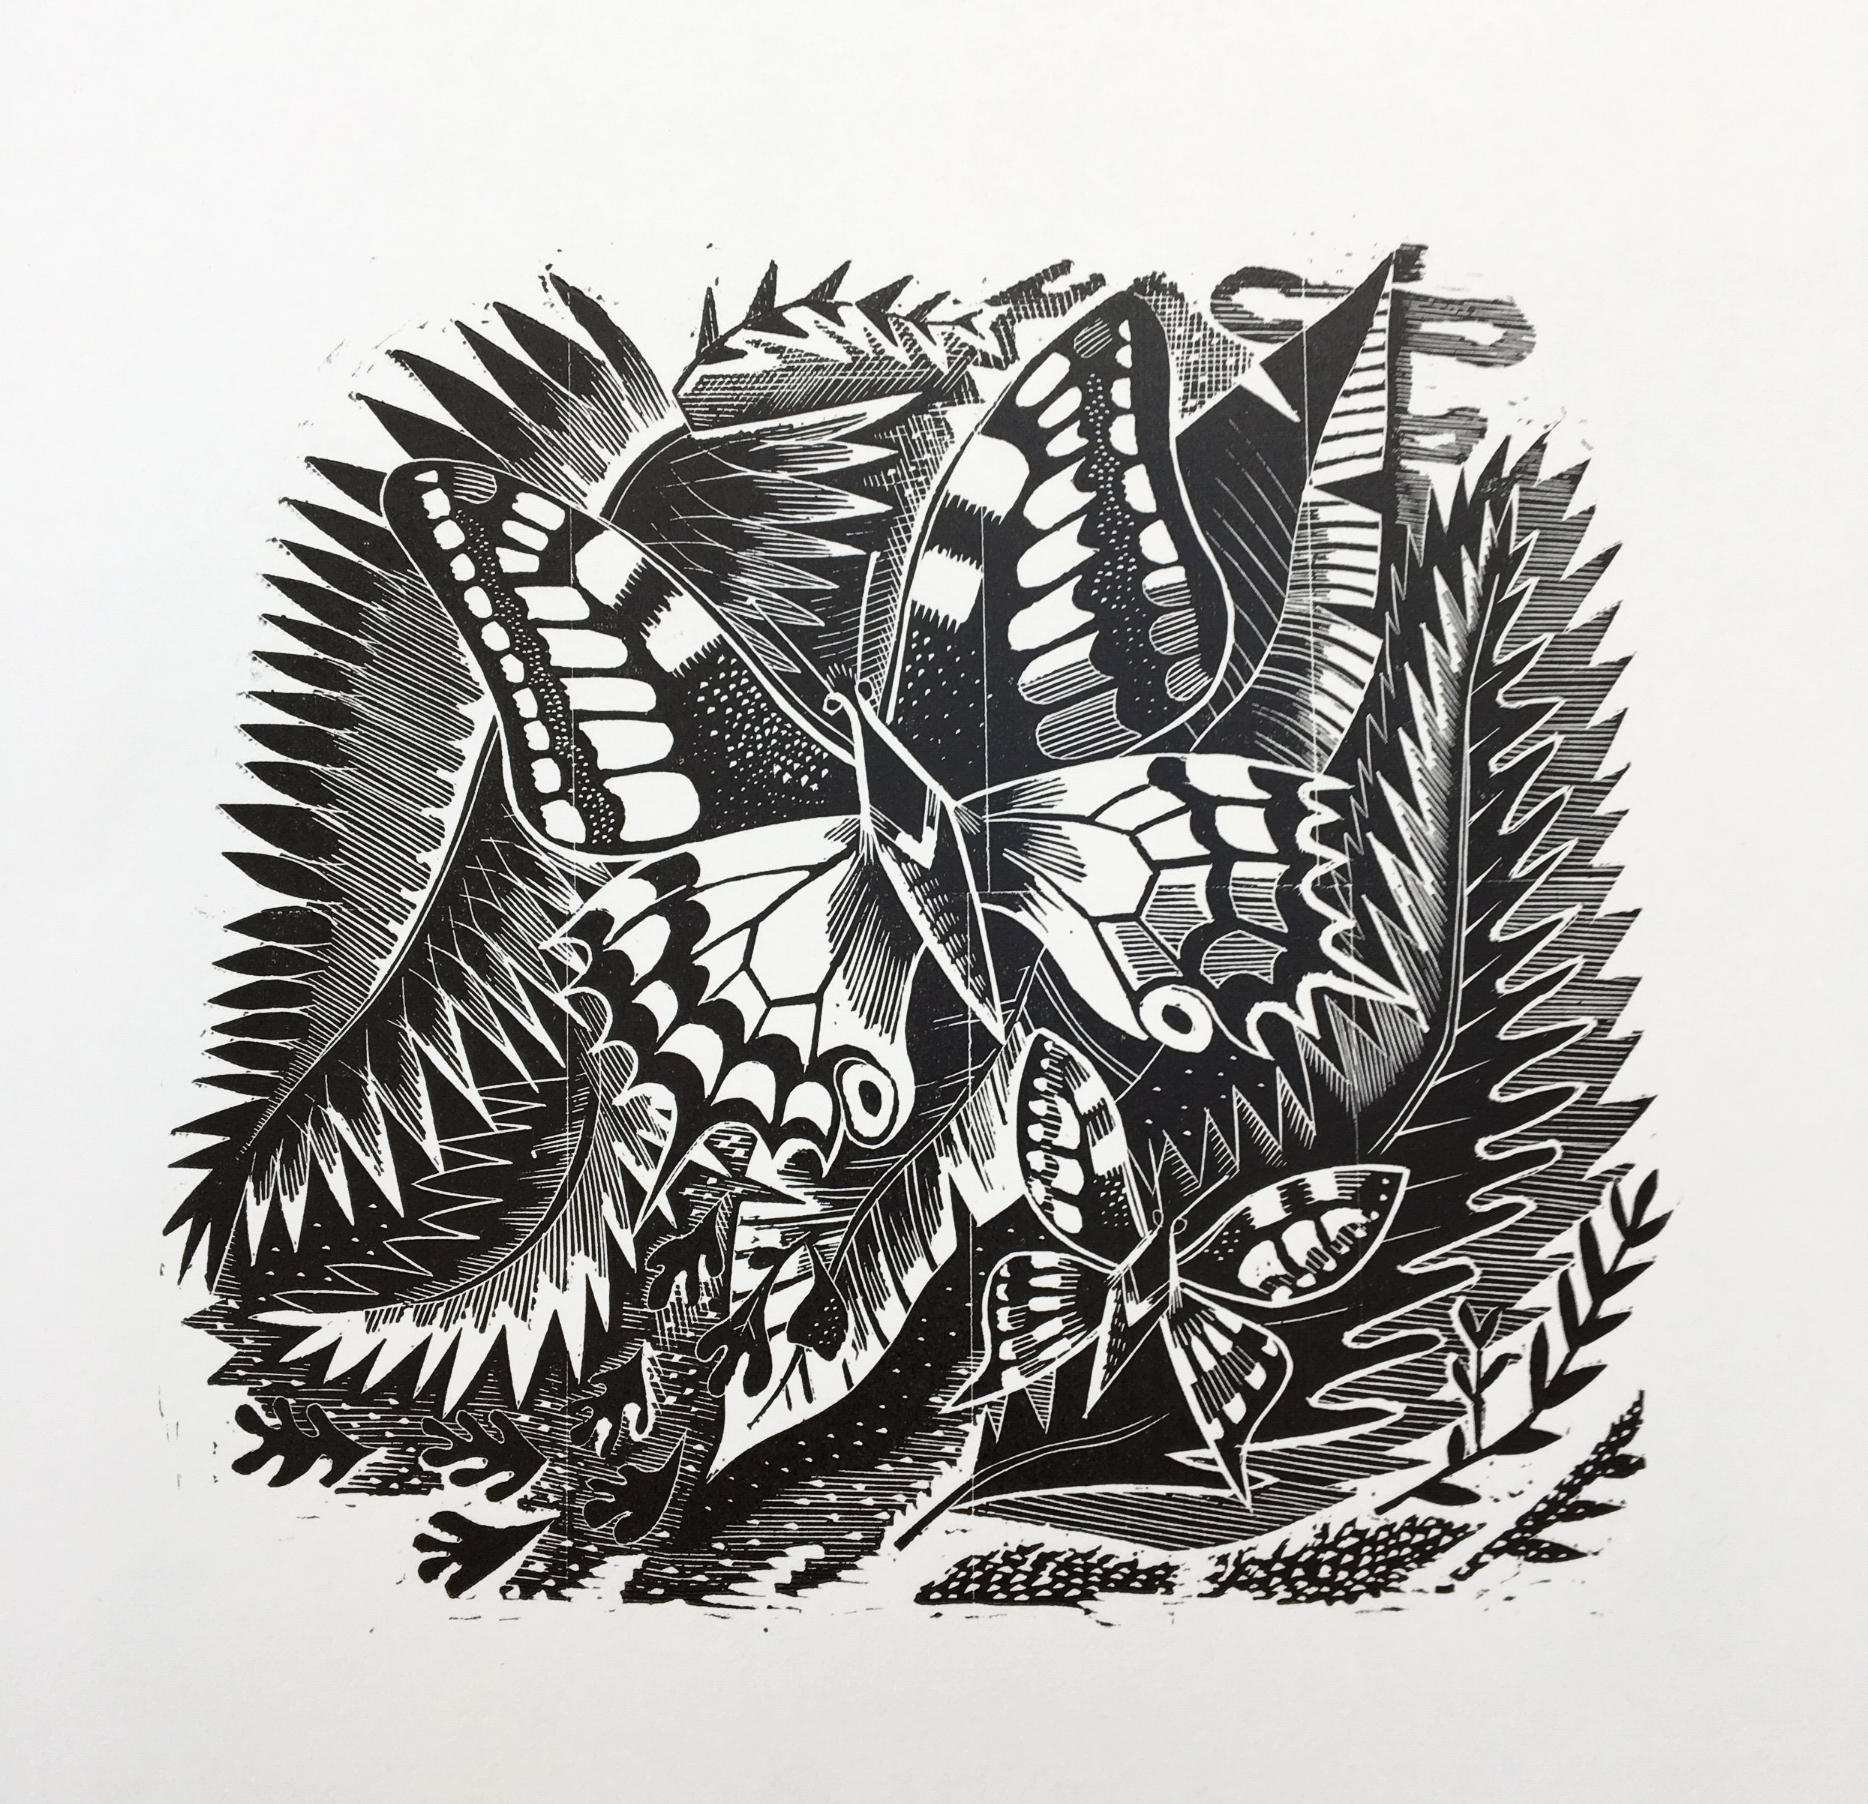 Tropical Butterflies - Wood engraving 14 x 14 cmsAnother memento of Cooper's Caribbean cruise. In later life she made a number of cushions, embroidered in petit point to her own designs. Several of them include butterfly motifs.£120